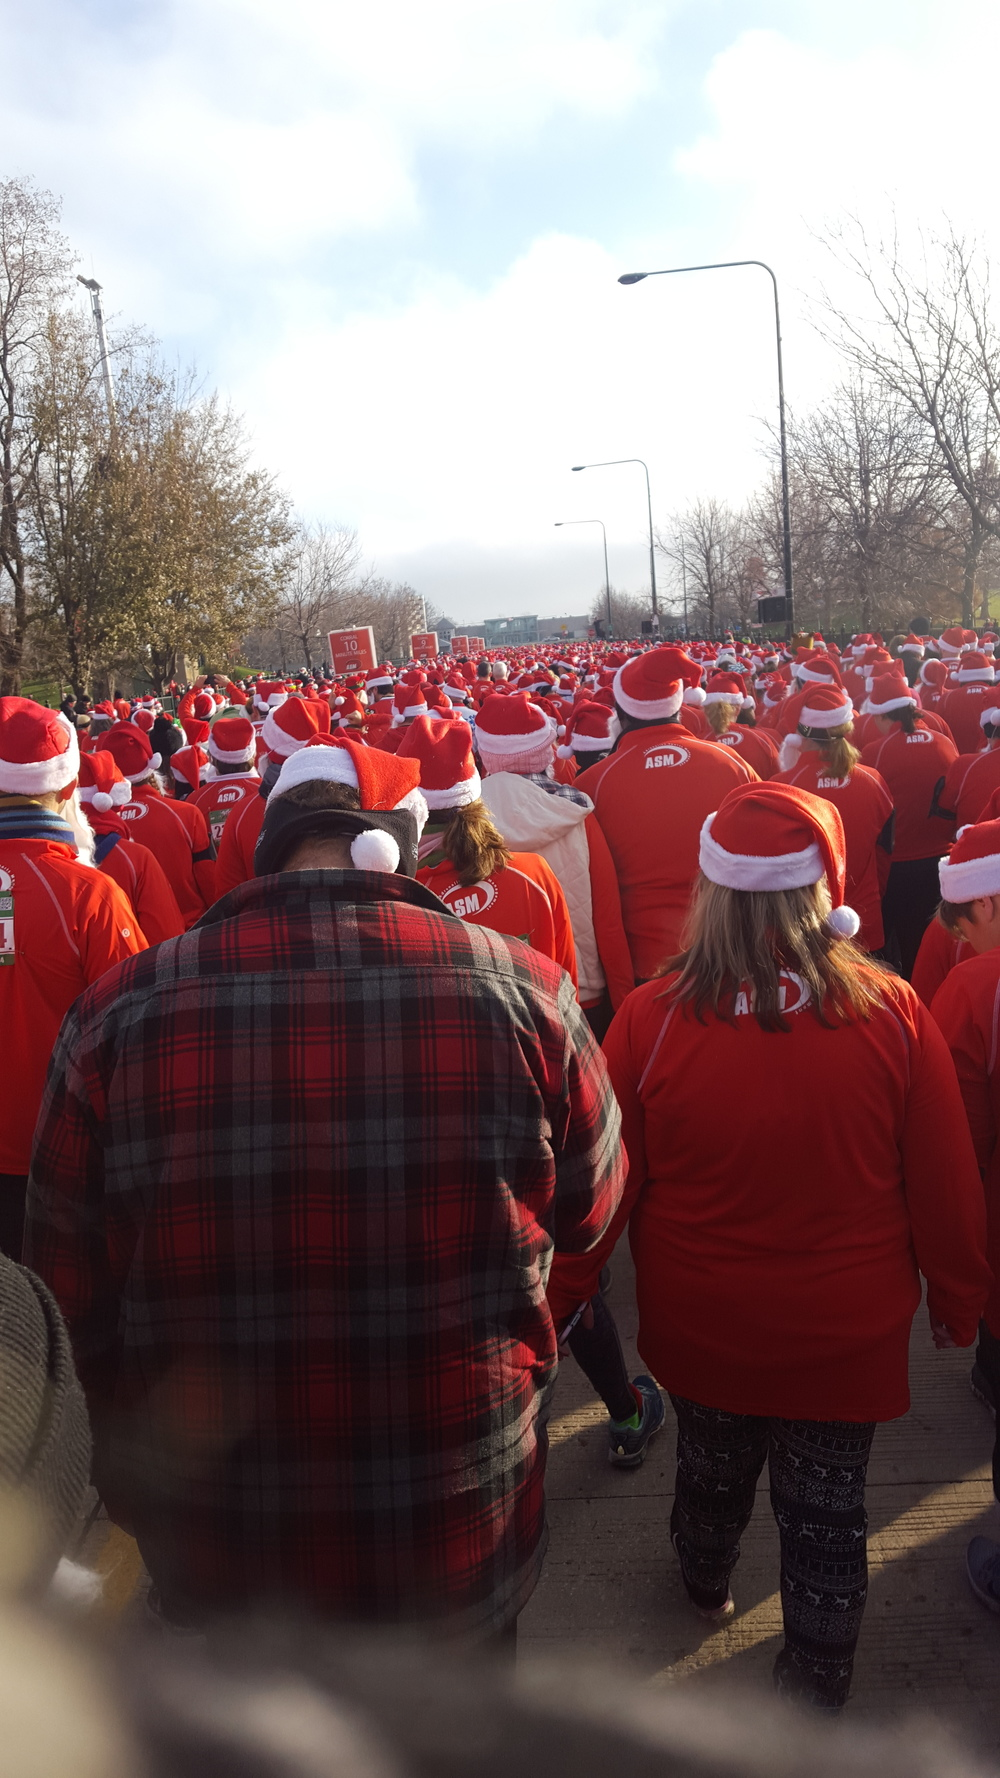 Santas were in town for the Santa Hustle 5K!